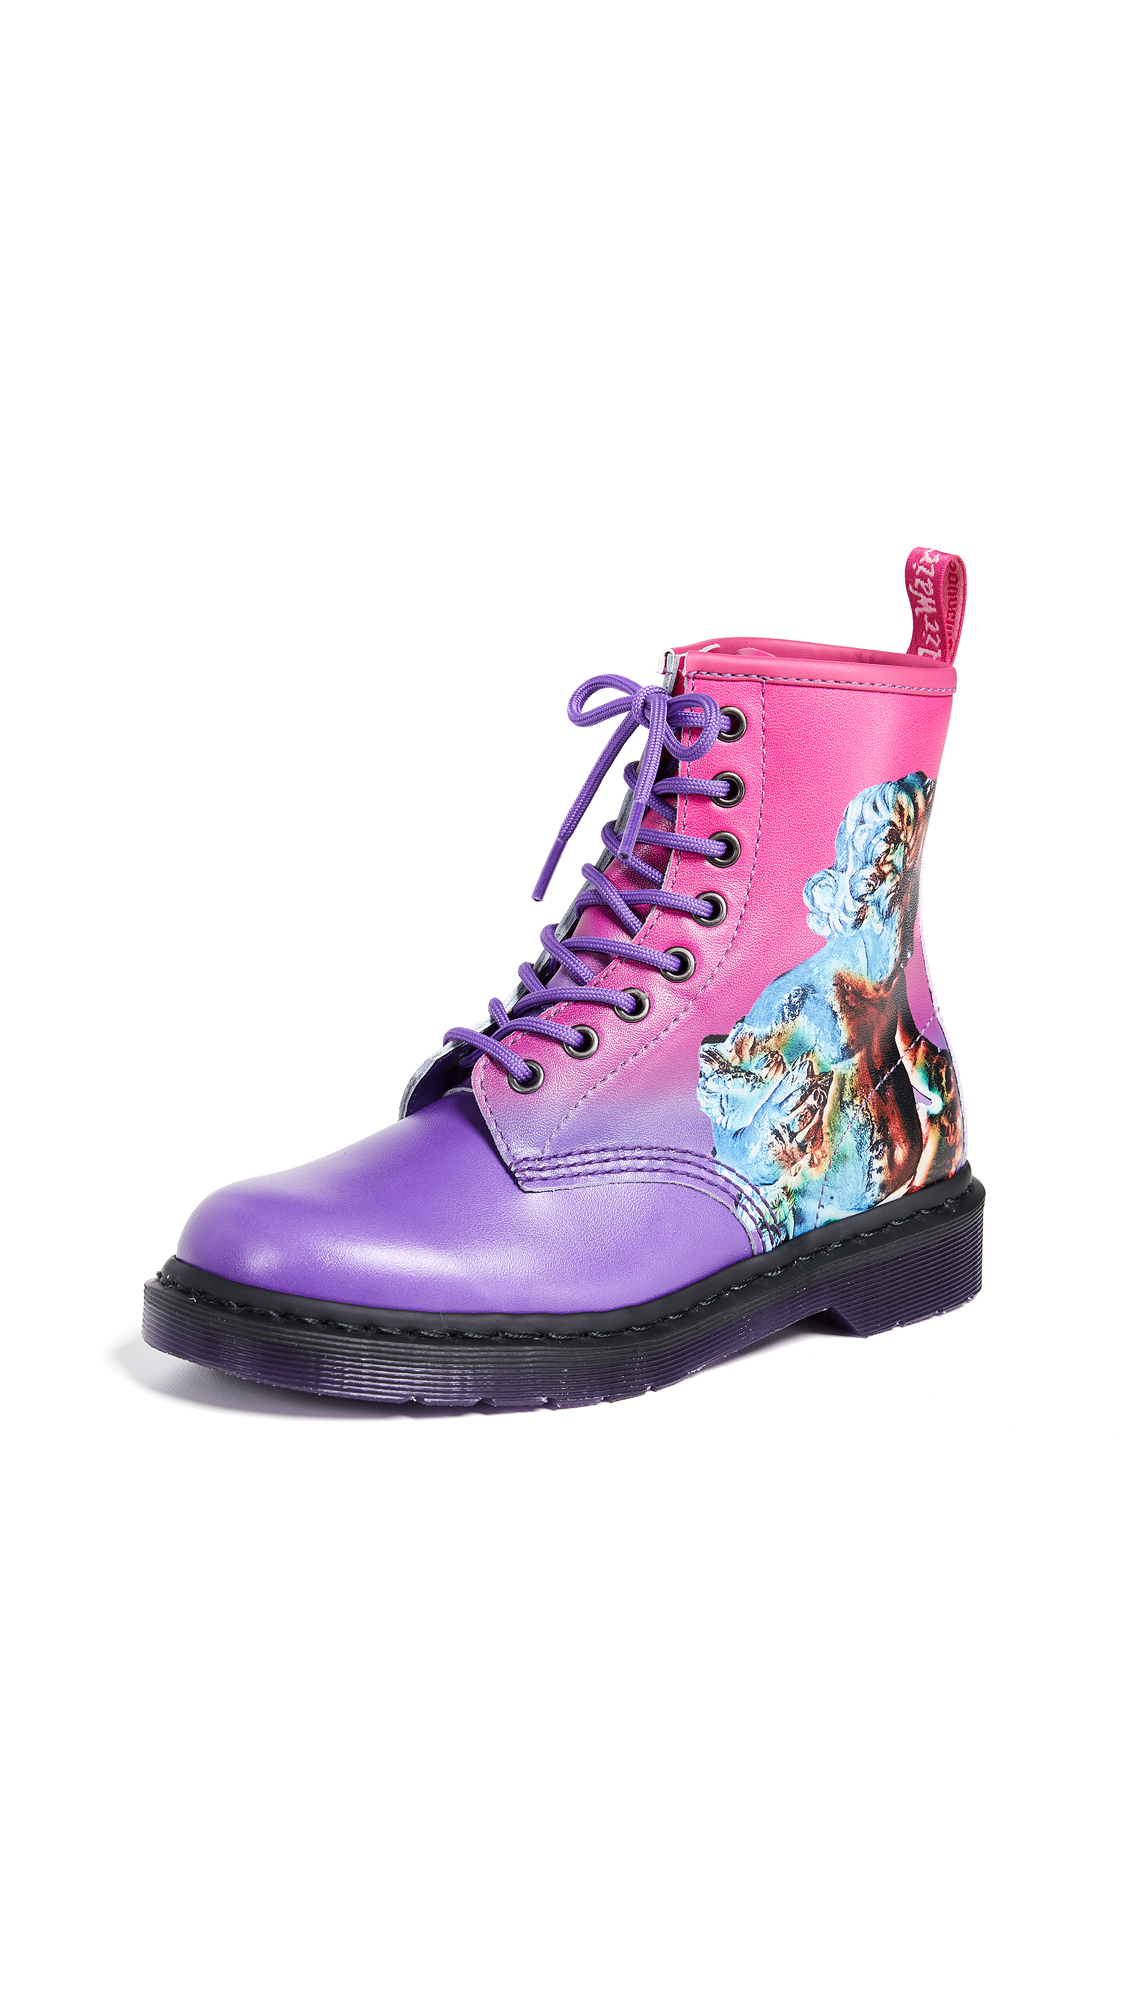 Dr. Martens 1460 8 Eye Technique Boots - Pink/Purple